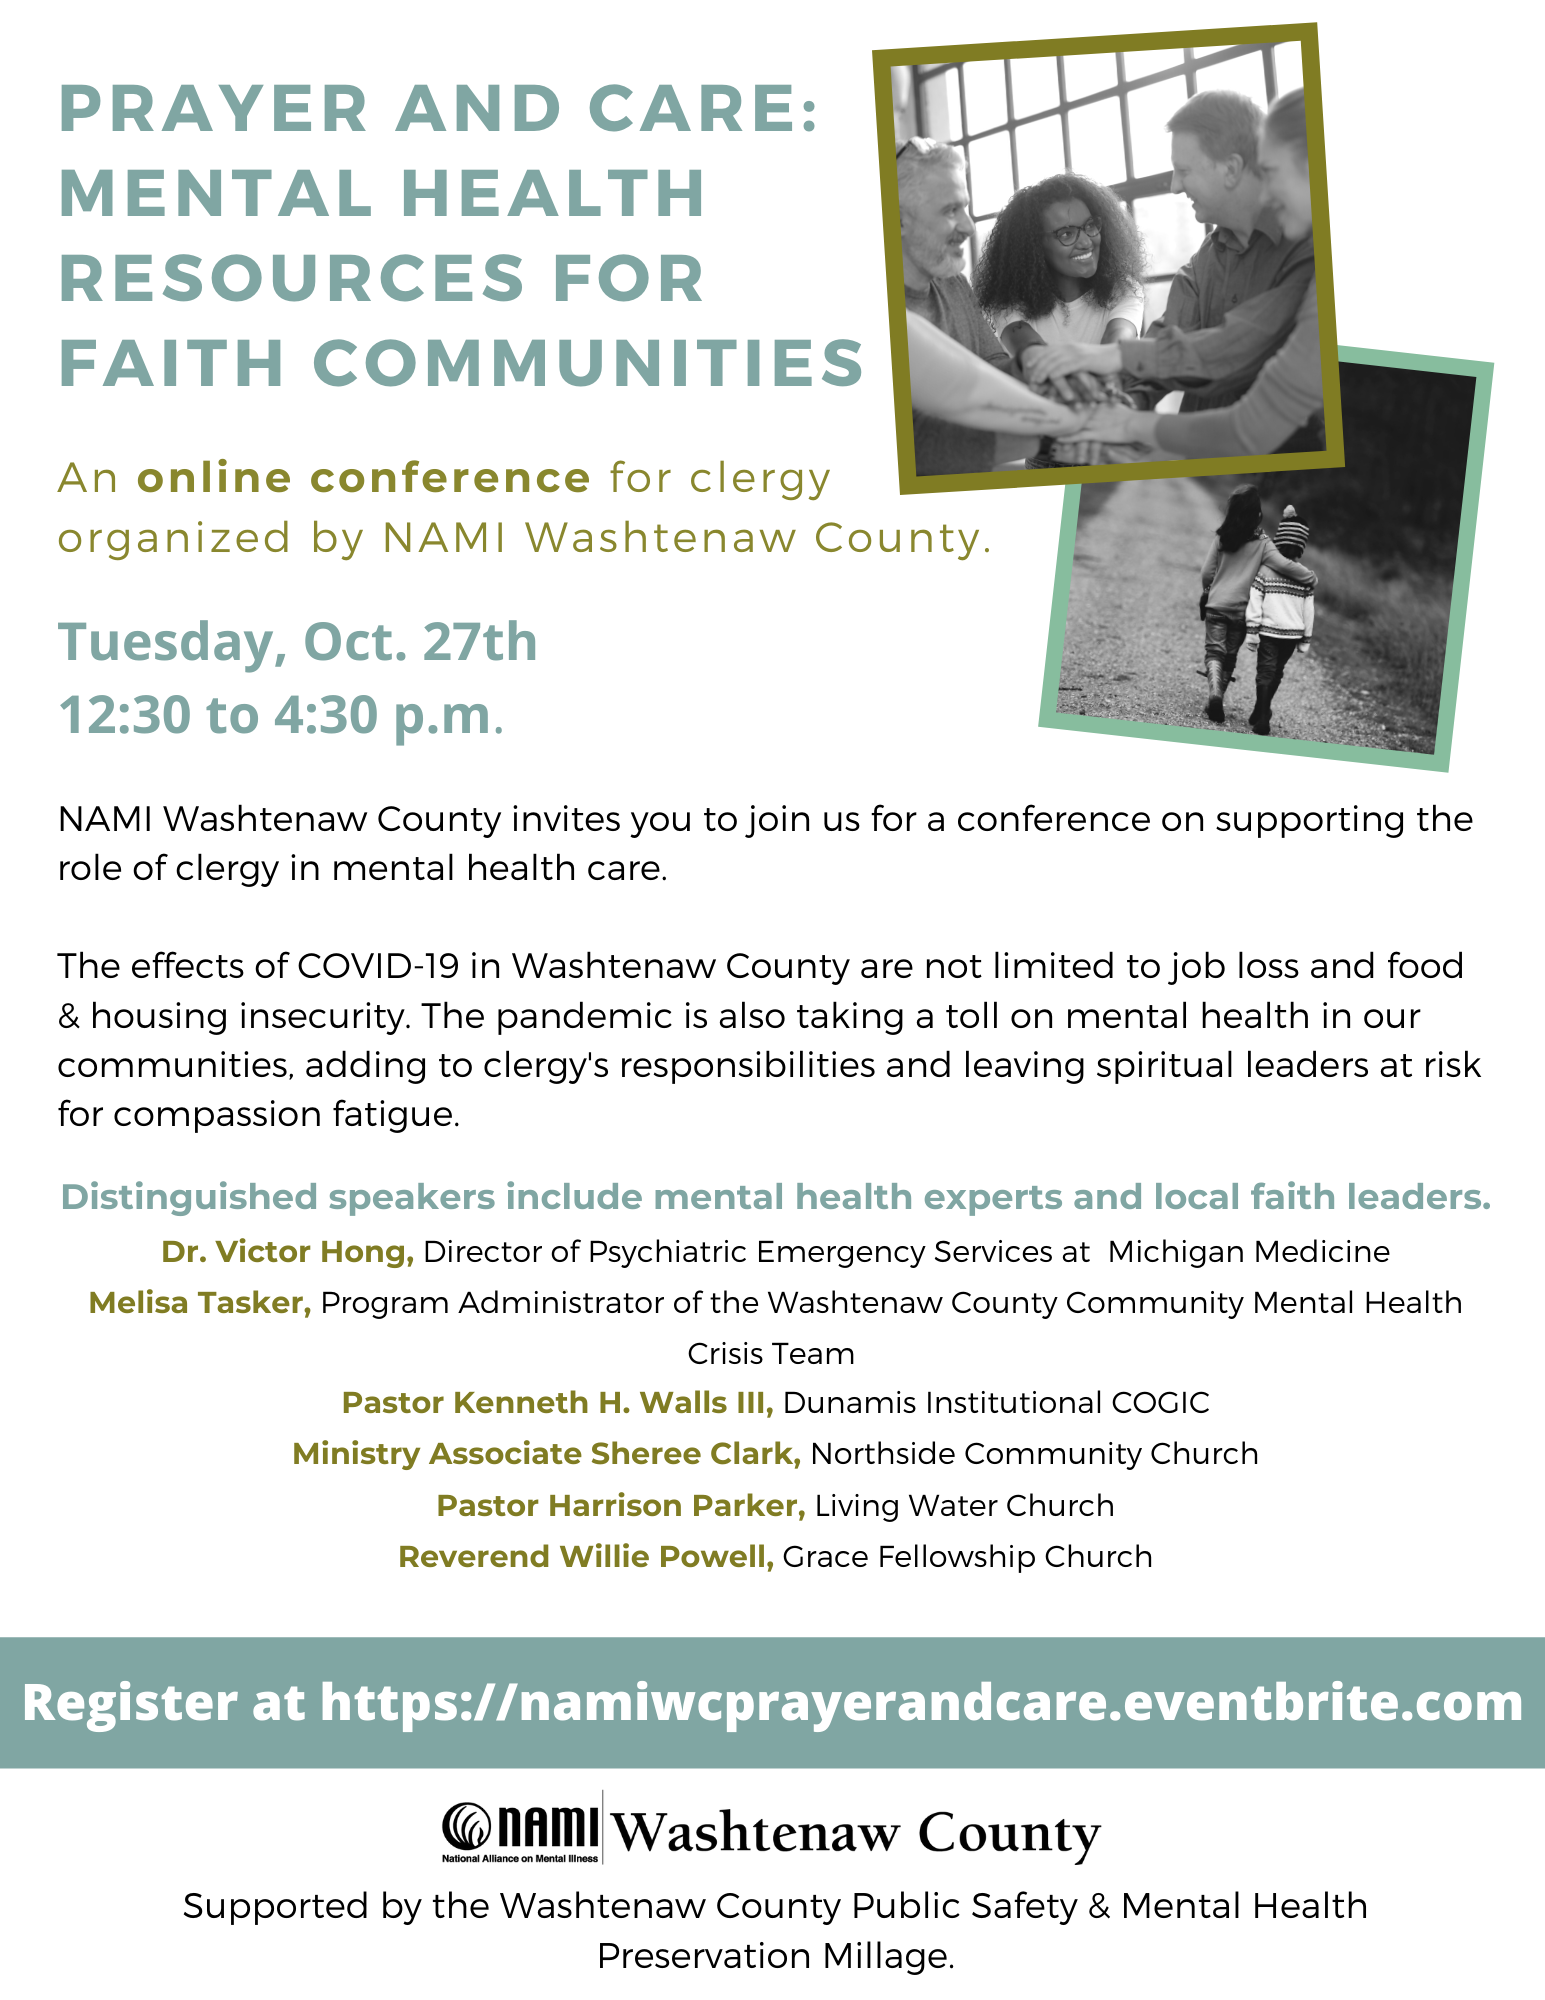 NAMI WC Clergy Conference Flyer